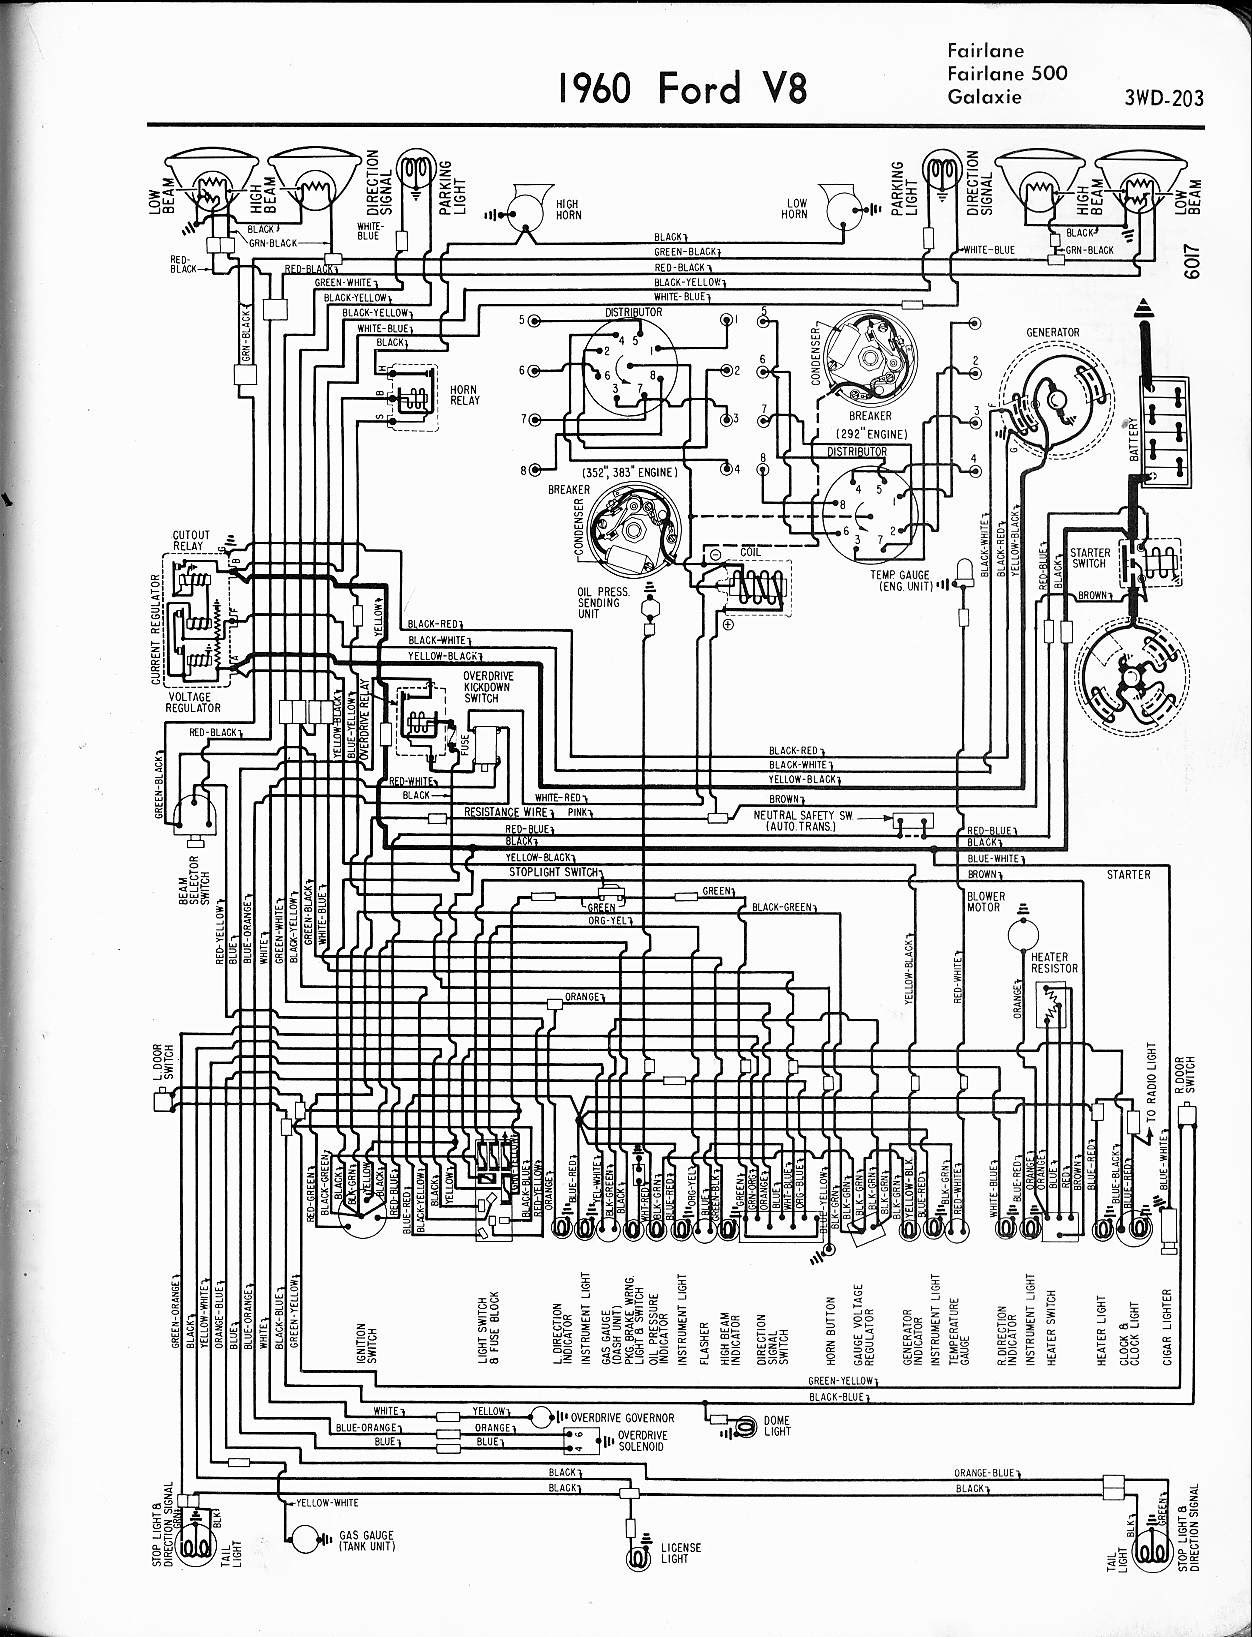 Diagram Ford Thunderbird Wiring Diagrams Full Version Hd Quality Wiring Diagrams Diagramschapa Tomari It